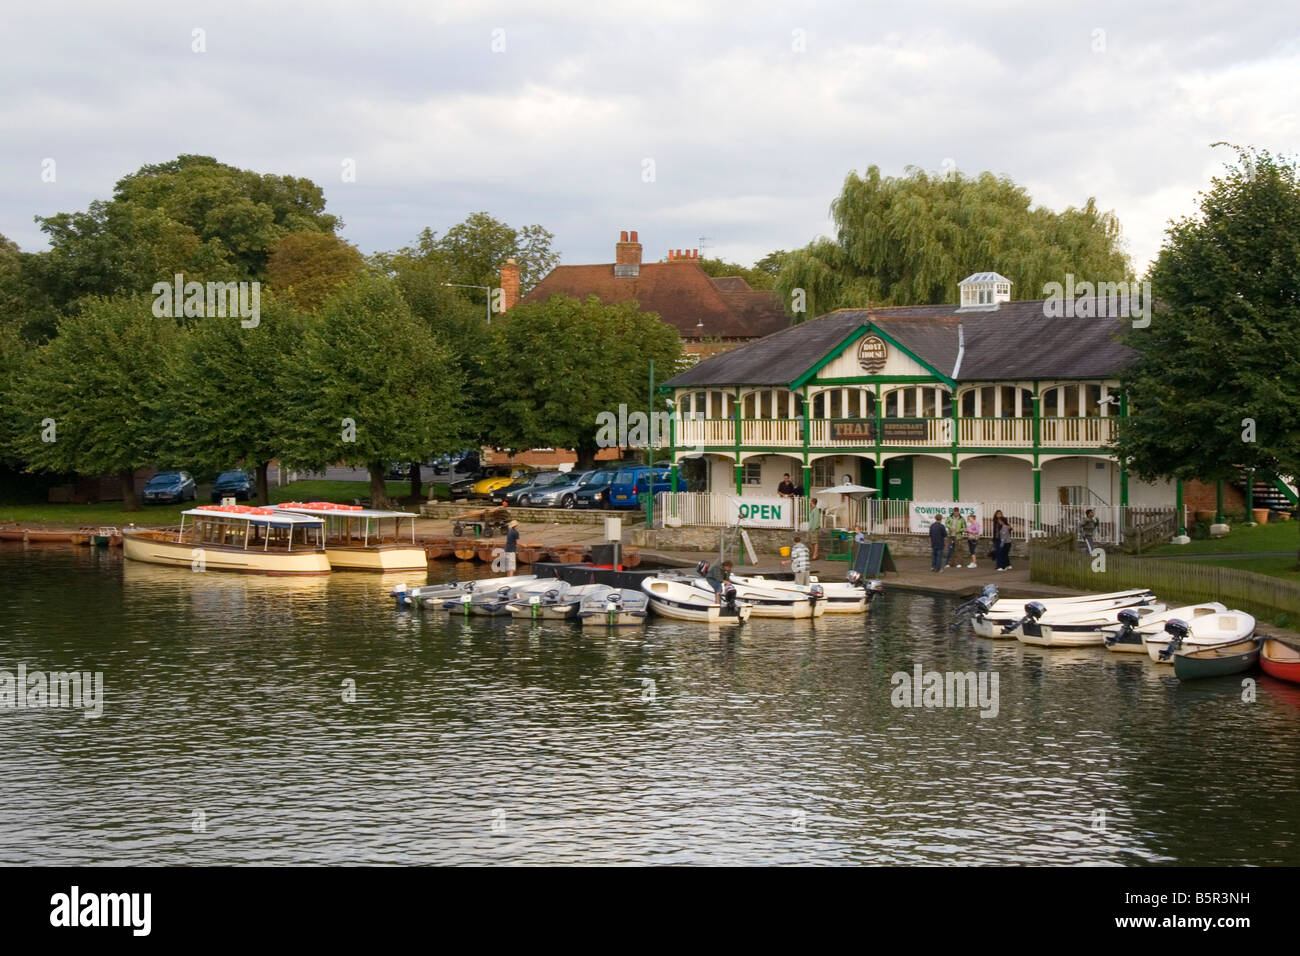 The Boat House on the River Avon at Stratford upon Avon Warwickshire England - Stock Image